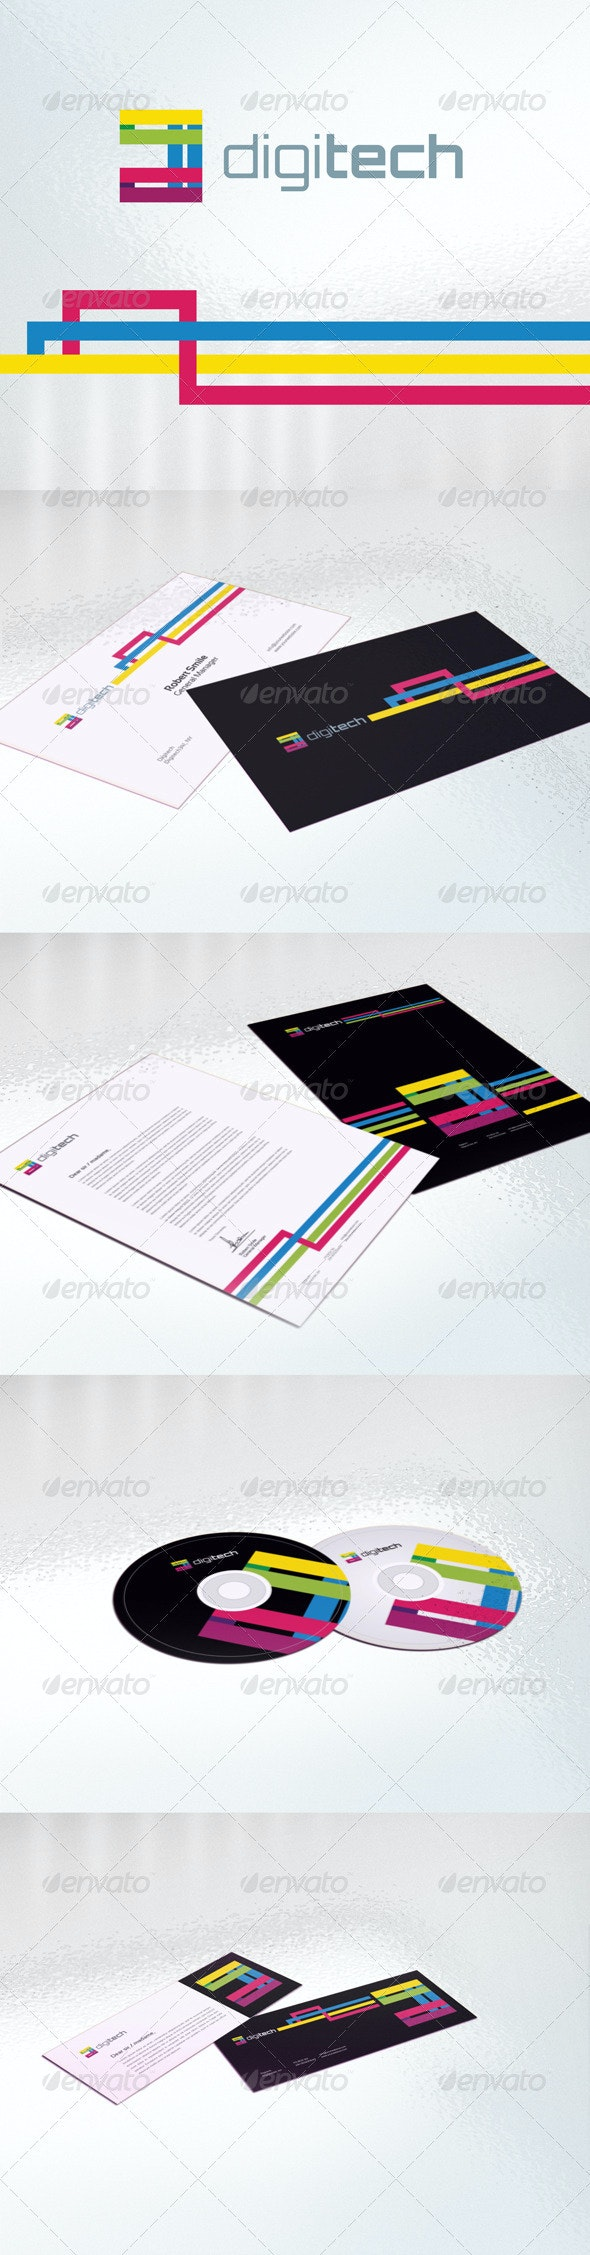 Digitech Identity Package - Stationery Print Templates